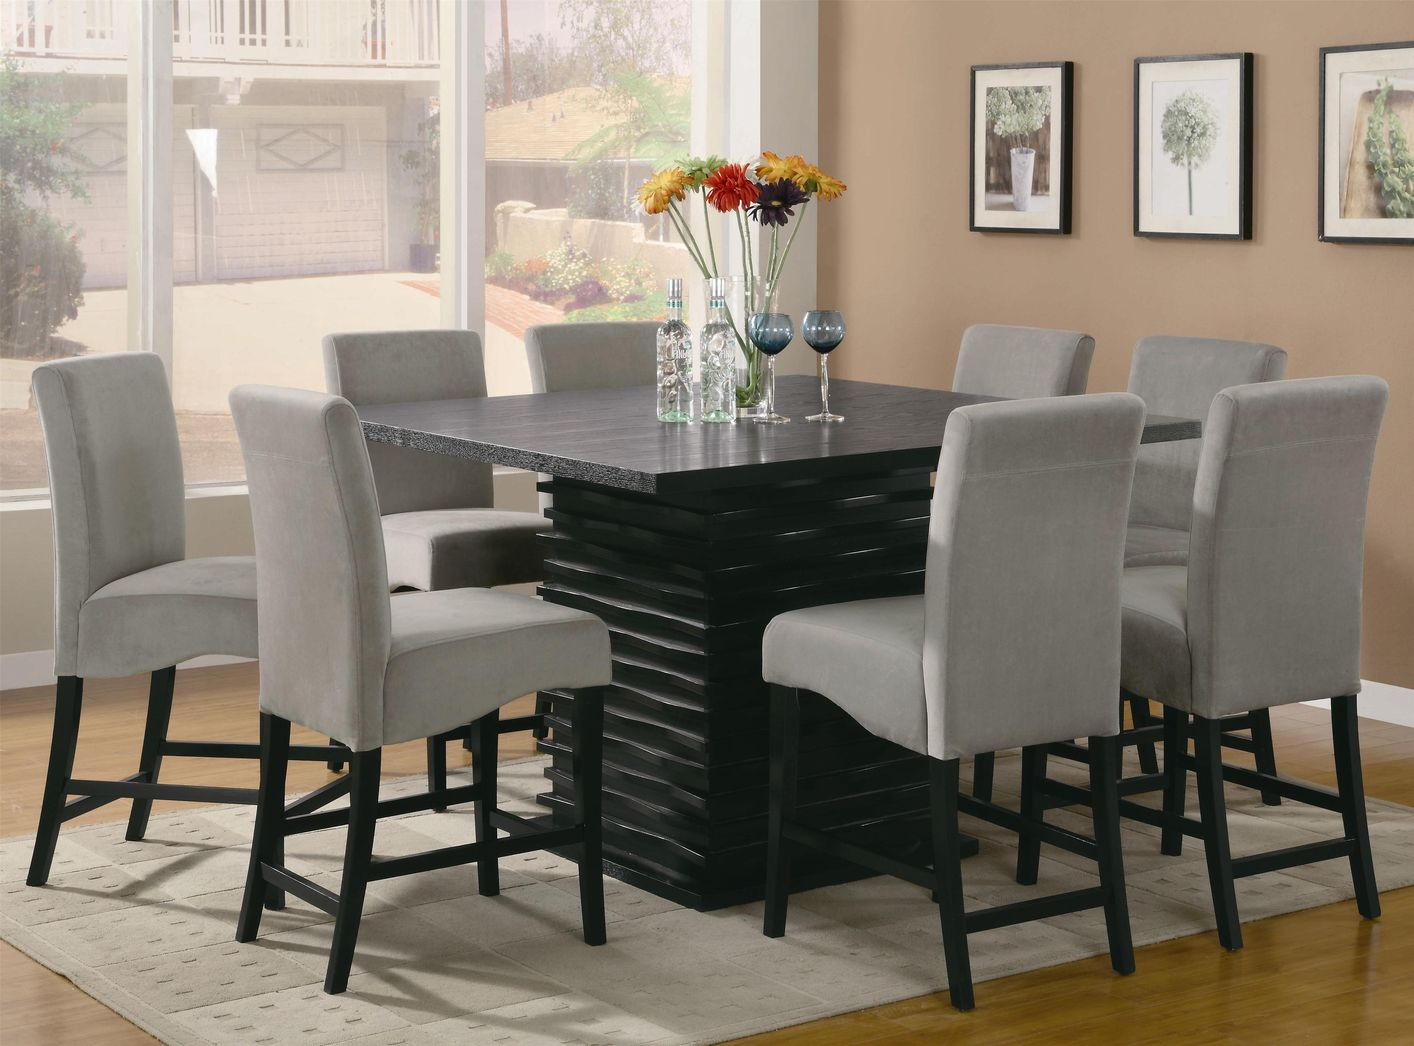 Stanton Black And Gray Wood Pub Table Set StealASofa Furniture